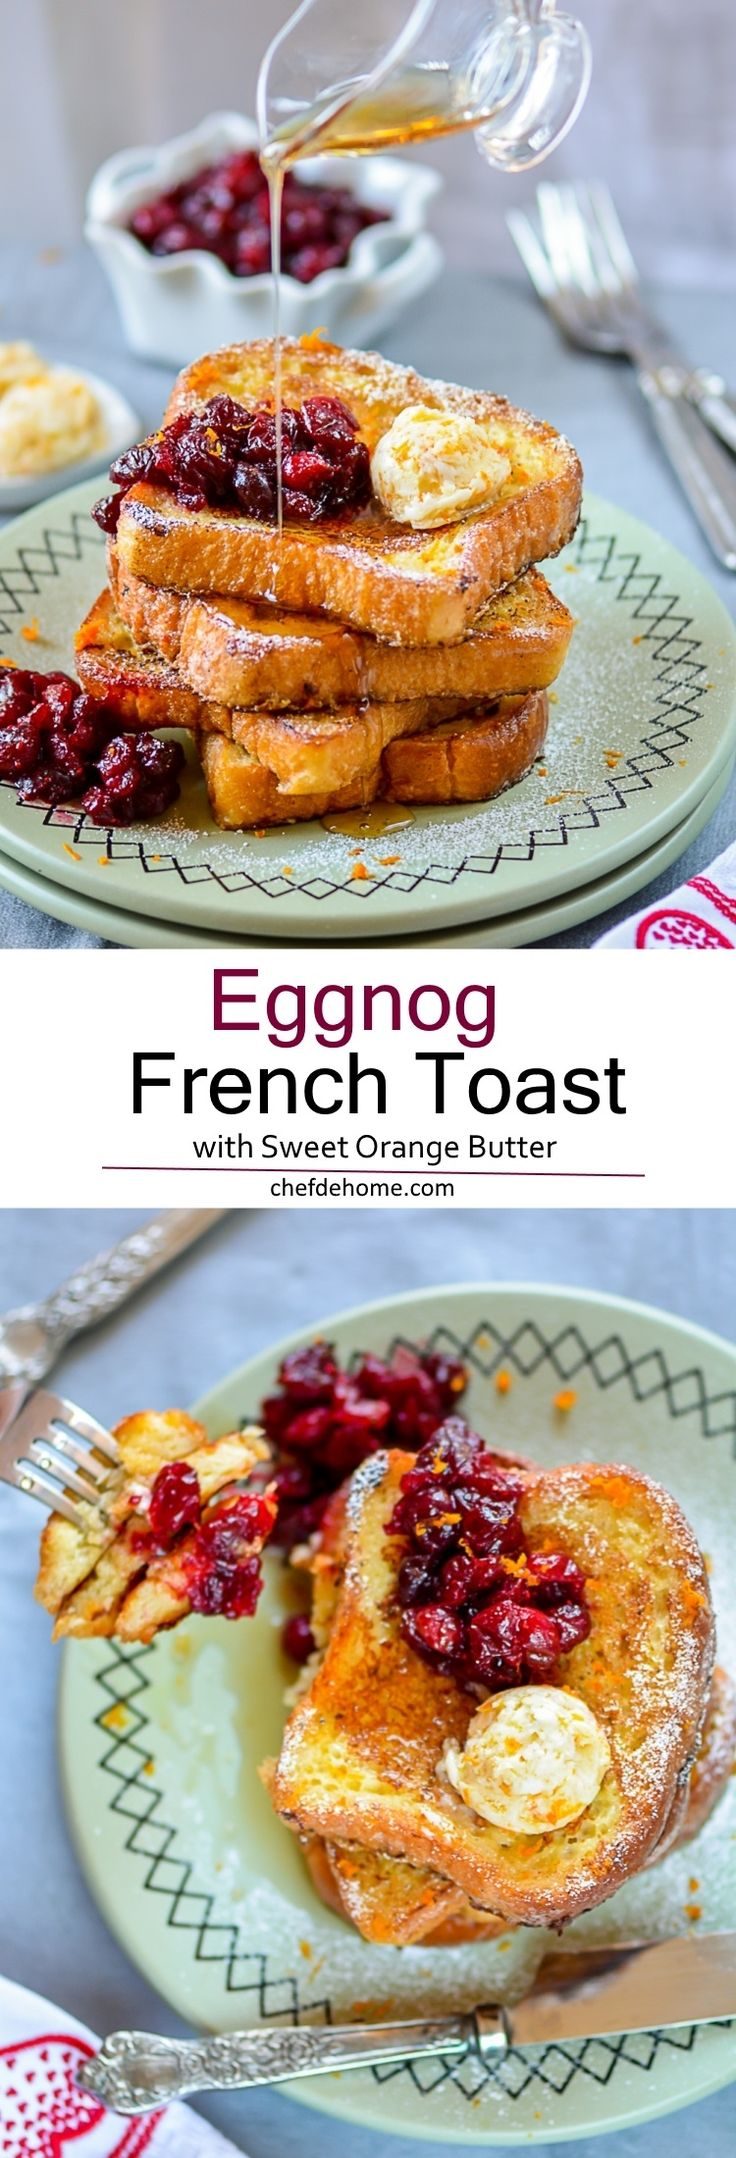 Eggnog French Toast with Orange Butter - make any day feel like holiday or to serve a special someone breakfast-in-bed! #valentinesday